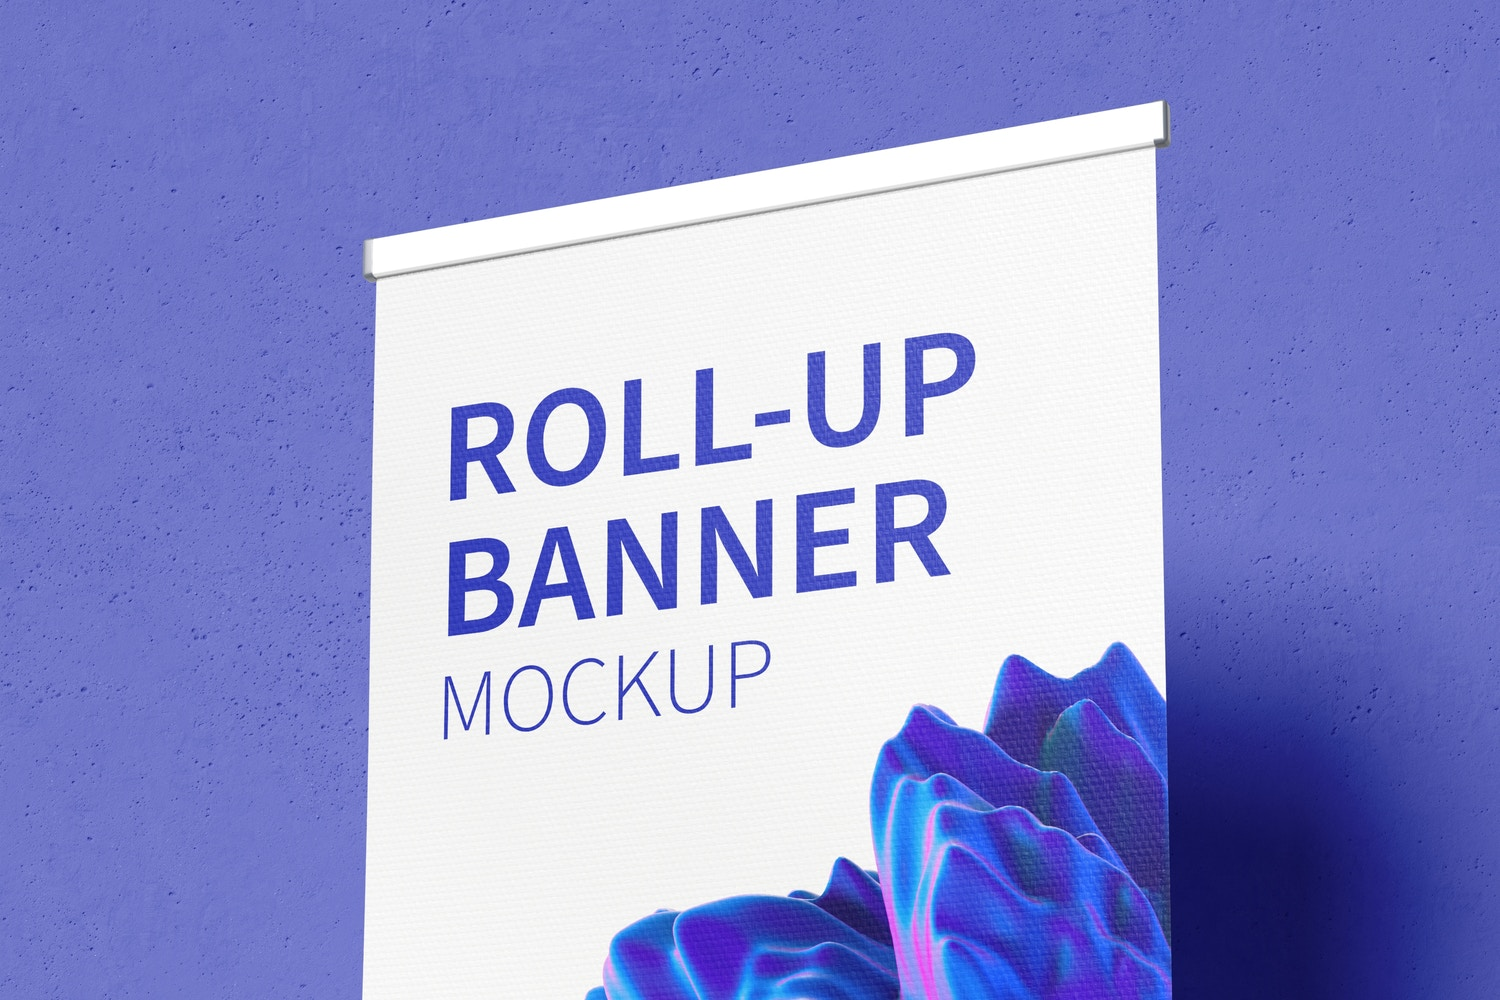 Standing Roll-Up Banner Mockup, Right View